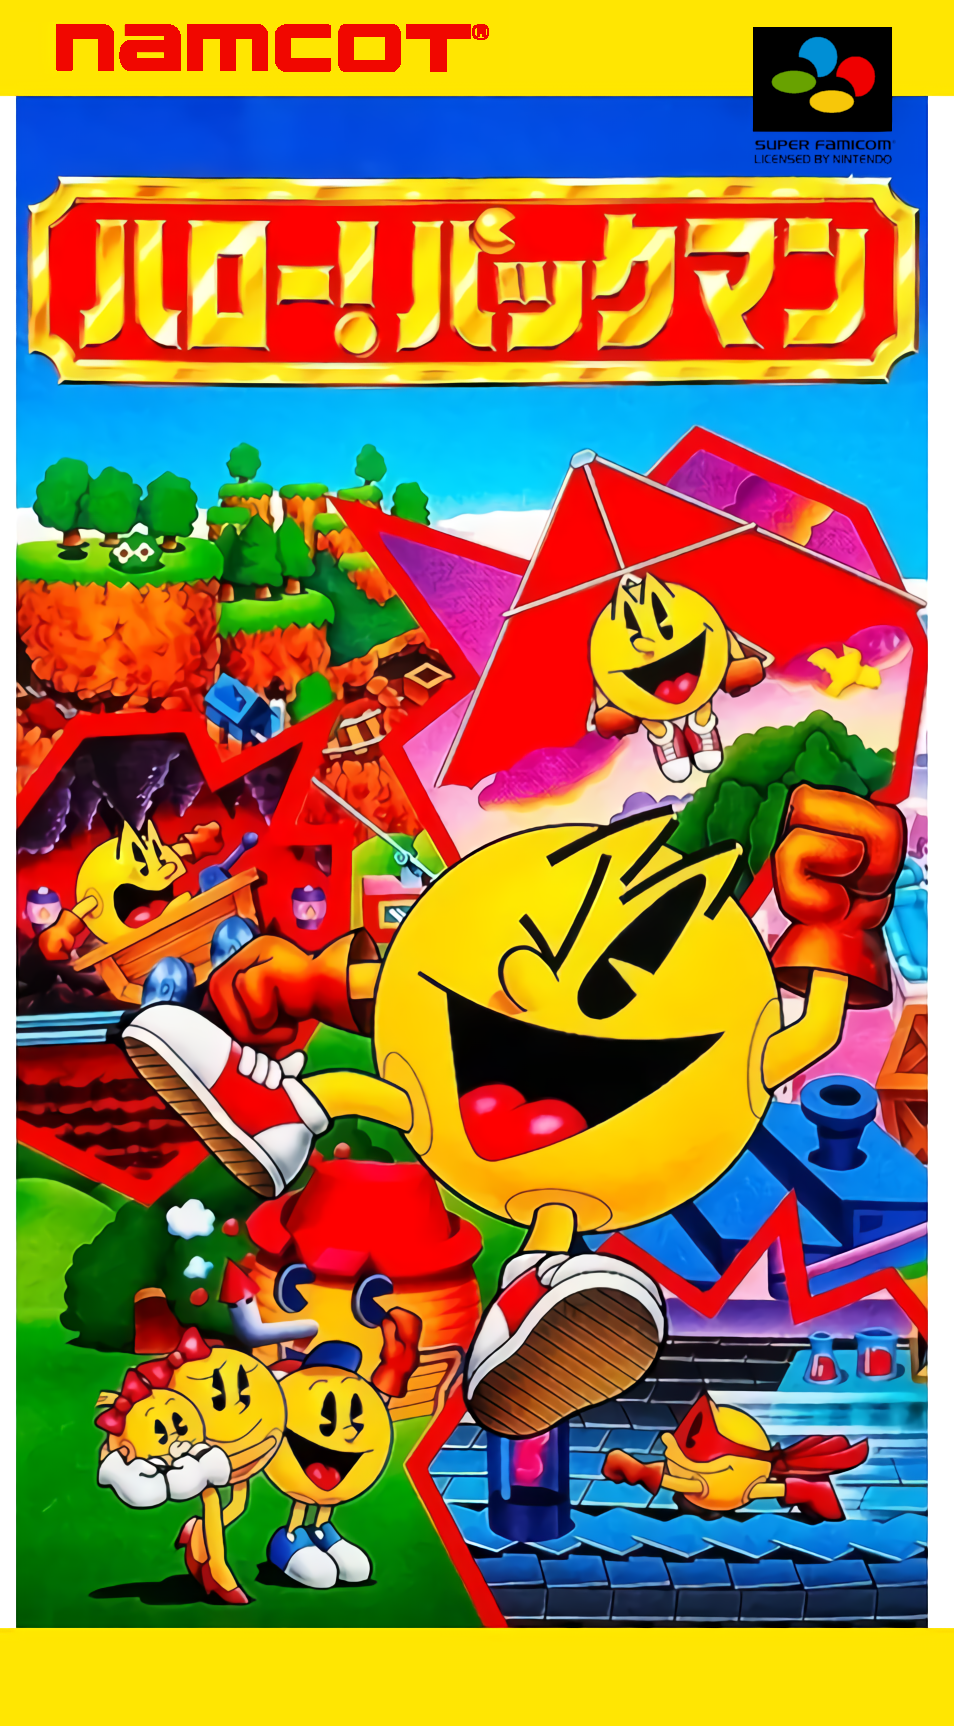 Pac man 2 games west siloam springs cherokee casino events